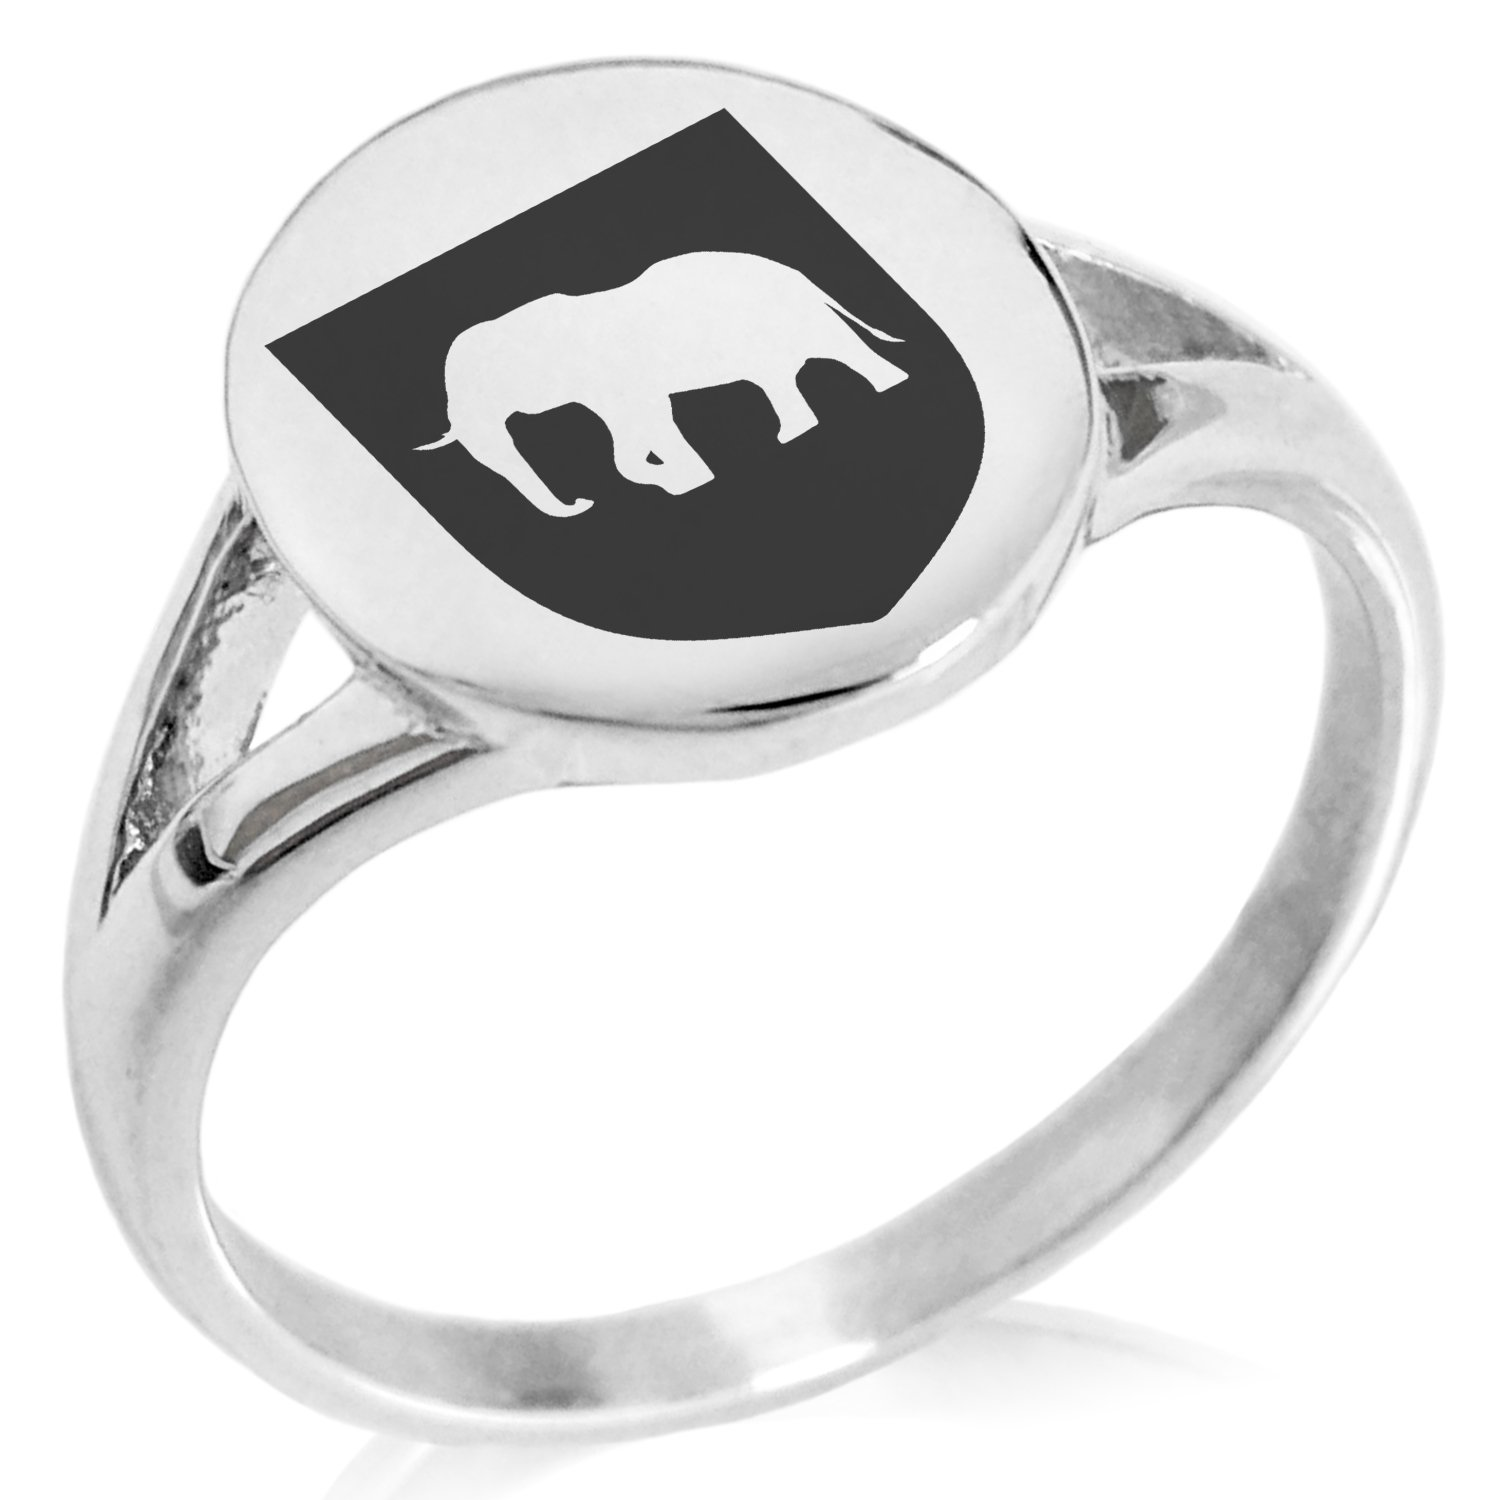 Tioneer Stainless Steel Elephant Strength Coat of Arms Shield Symbol Minimalist Oval Top Polished Statement Ring, Size 5